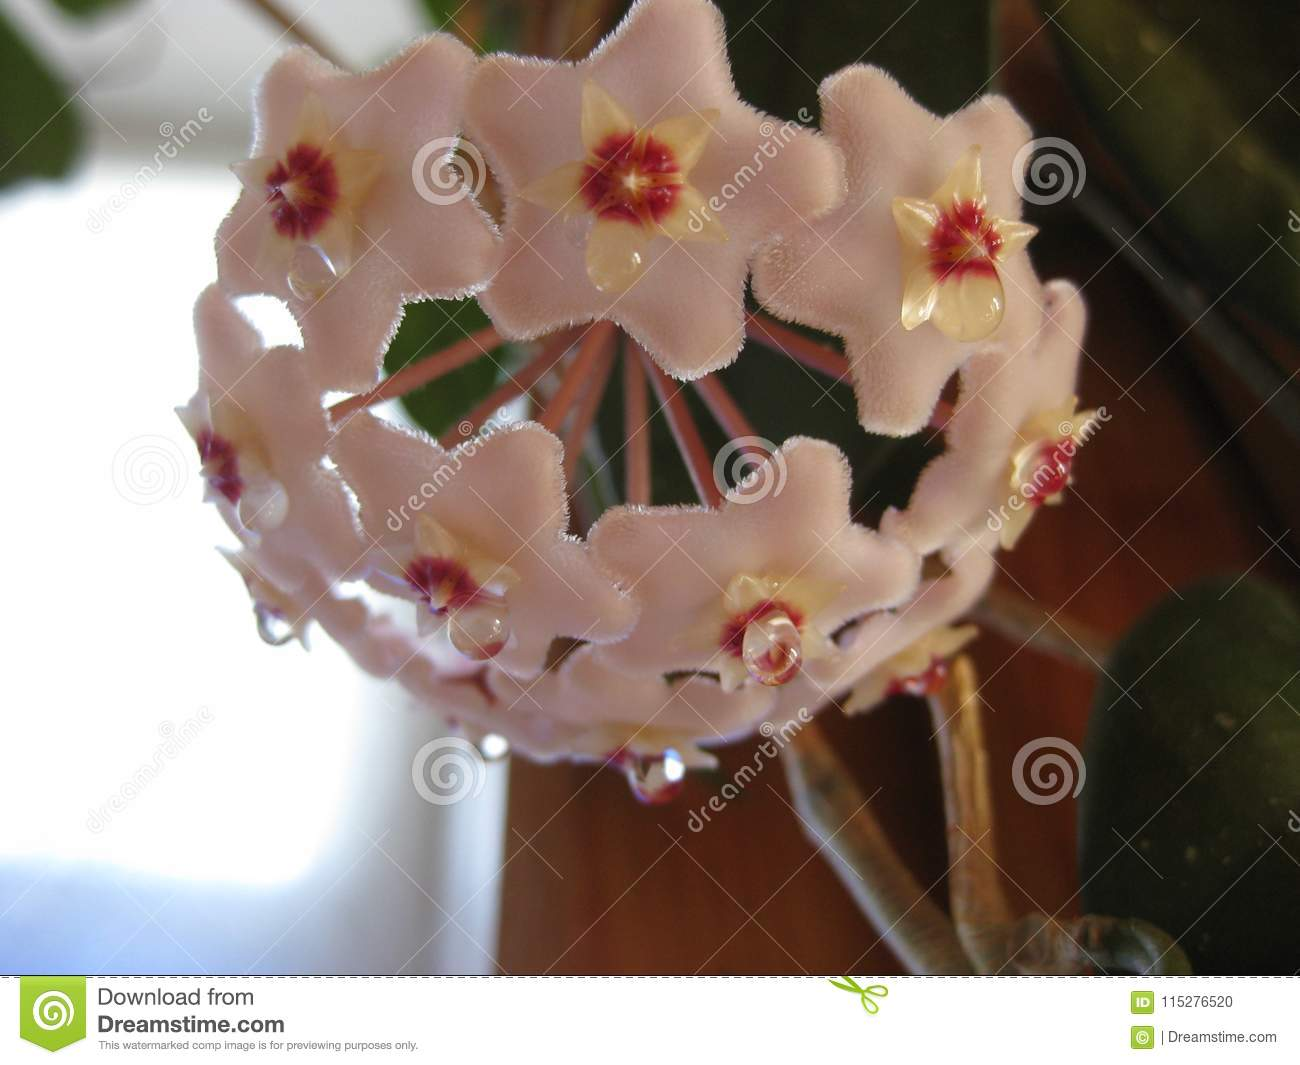 Hoya flowers are small and collected in small bouquets - very nice look in any interior.